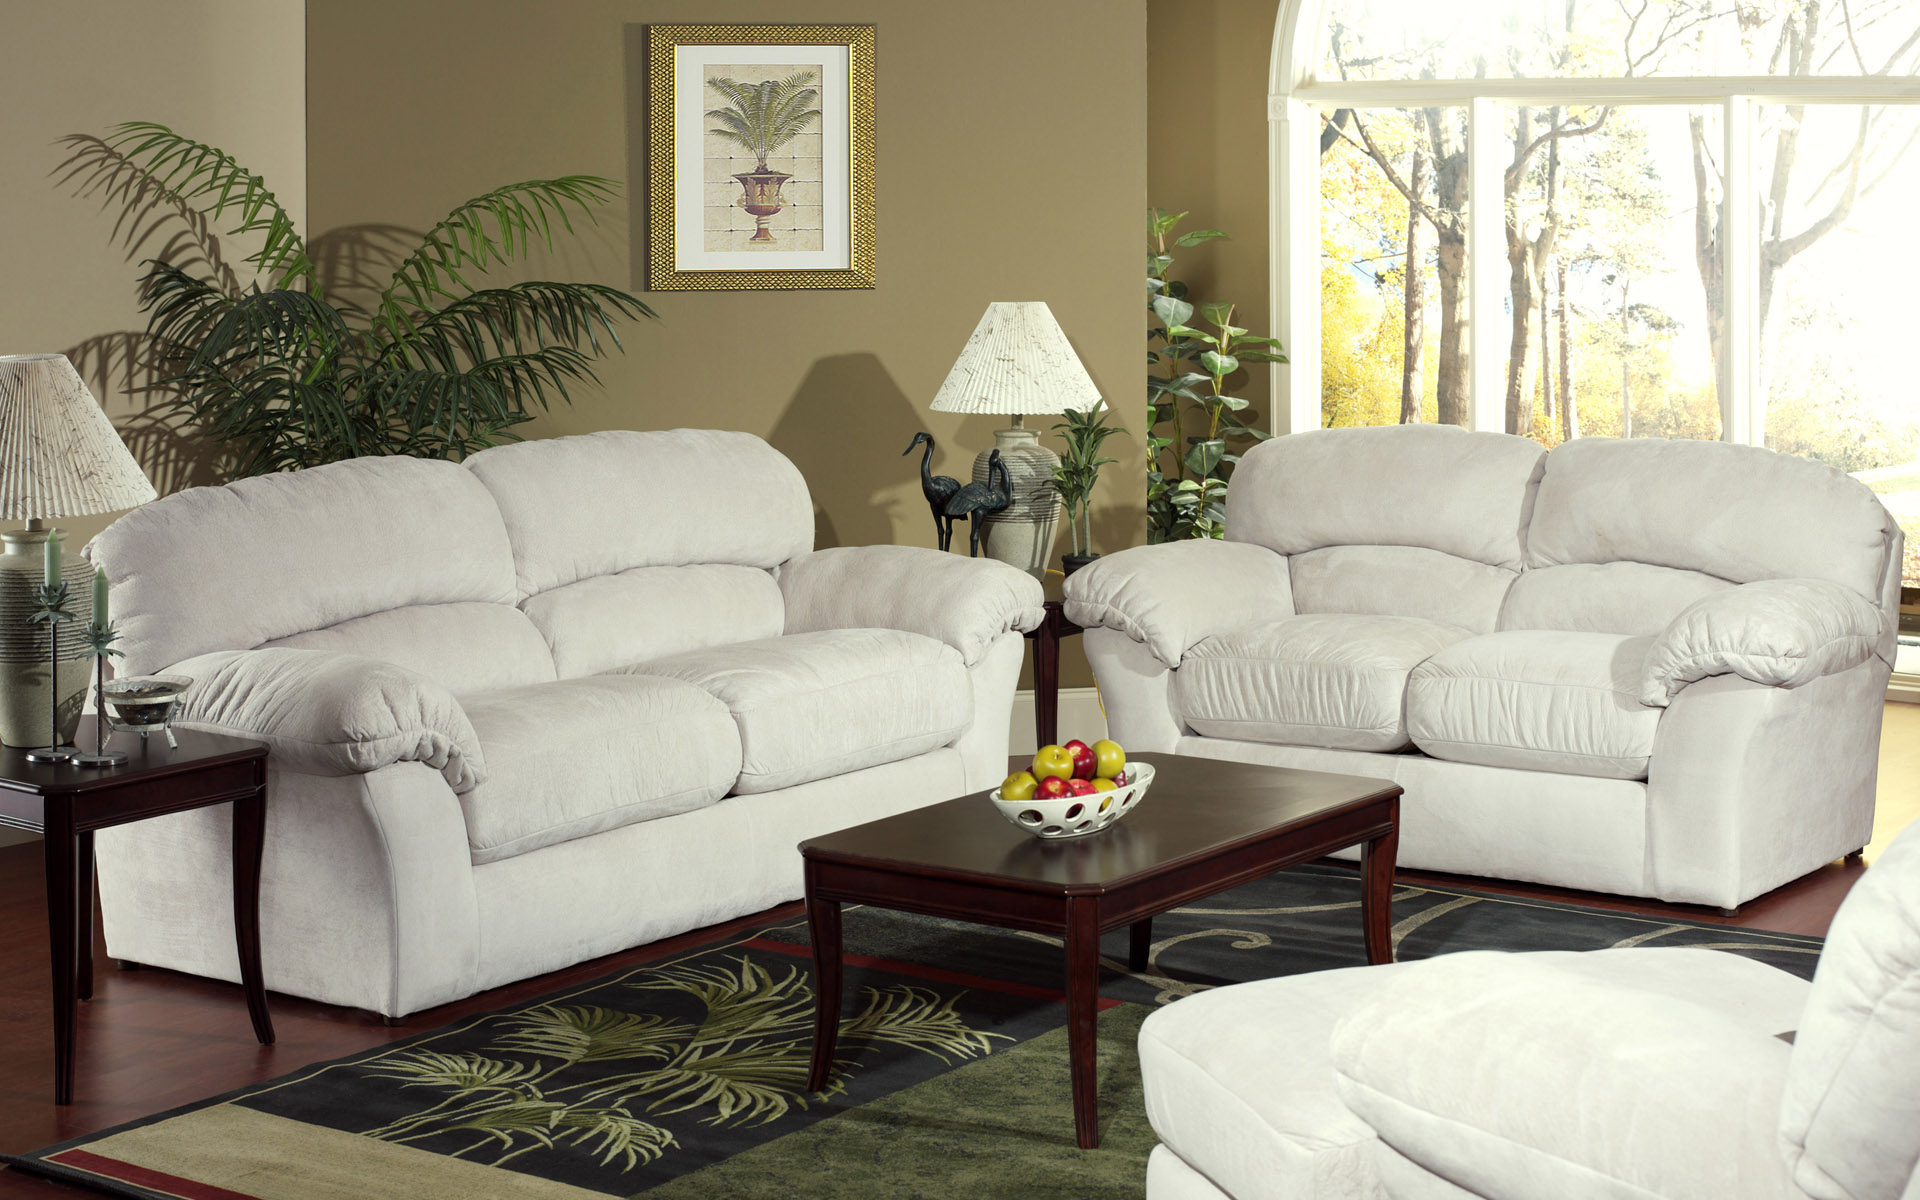 VIEW IN GALLERY White Sofa Sets For Living Room Cozy Contemporary Furniture